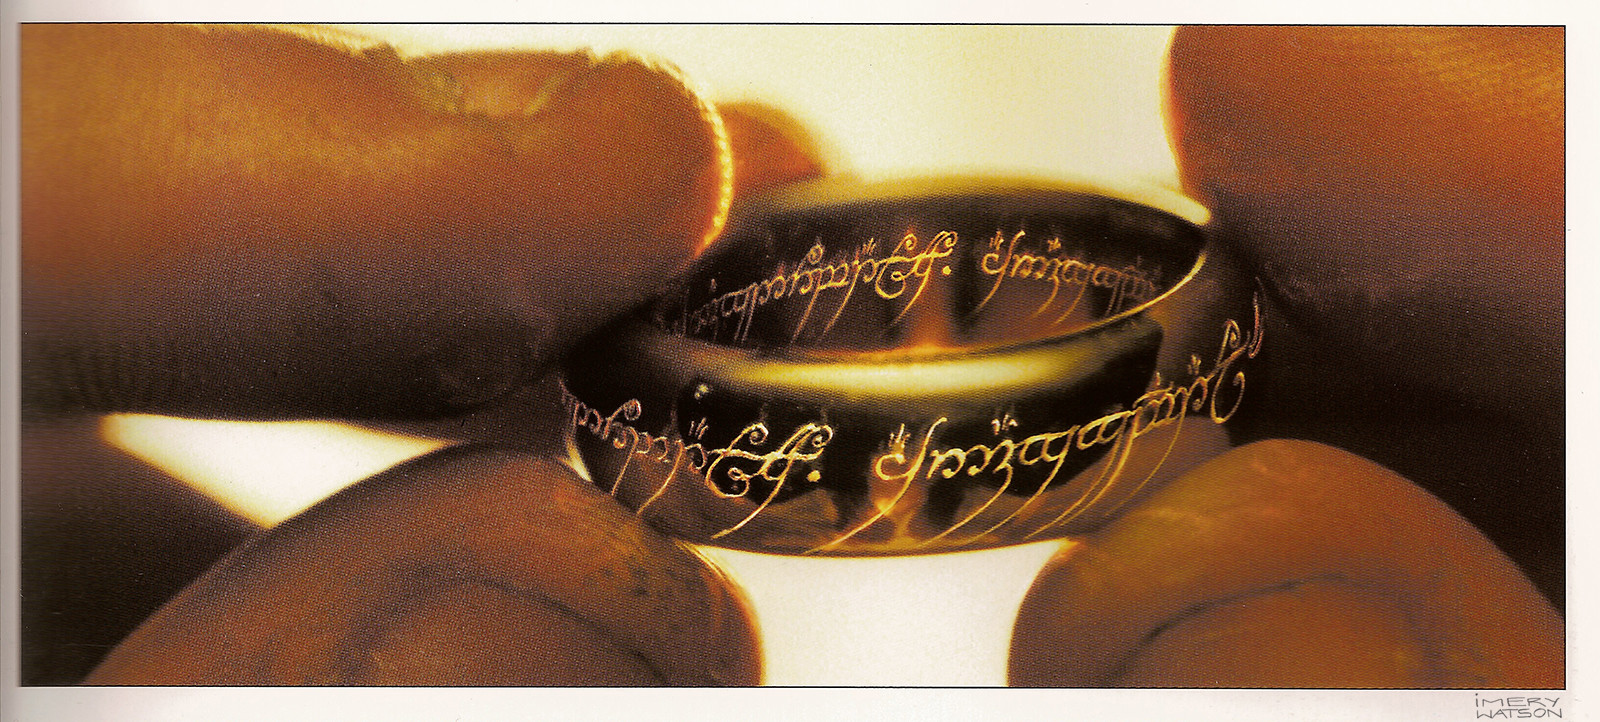 The One Ring...